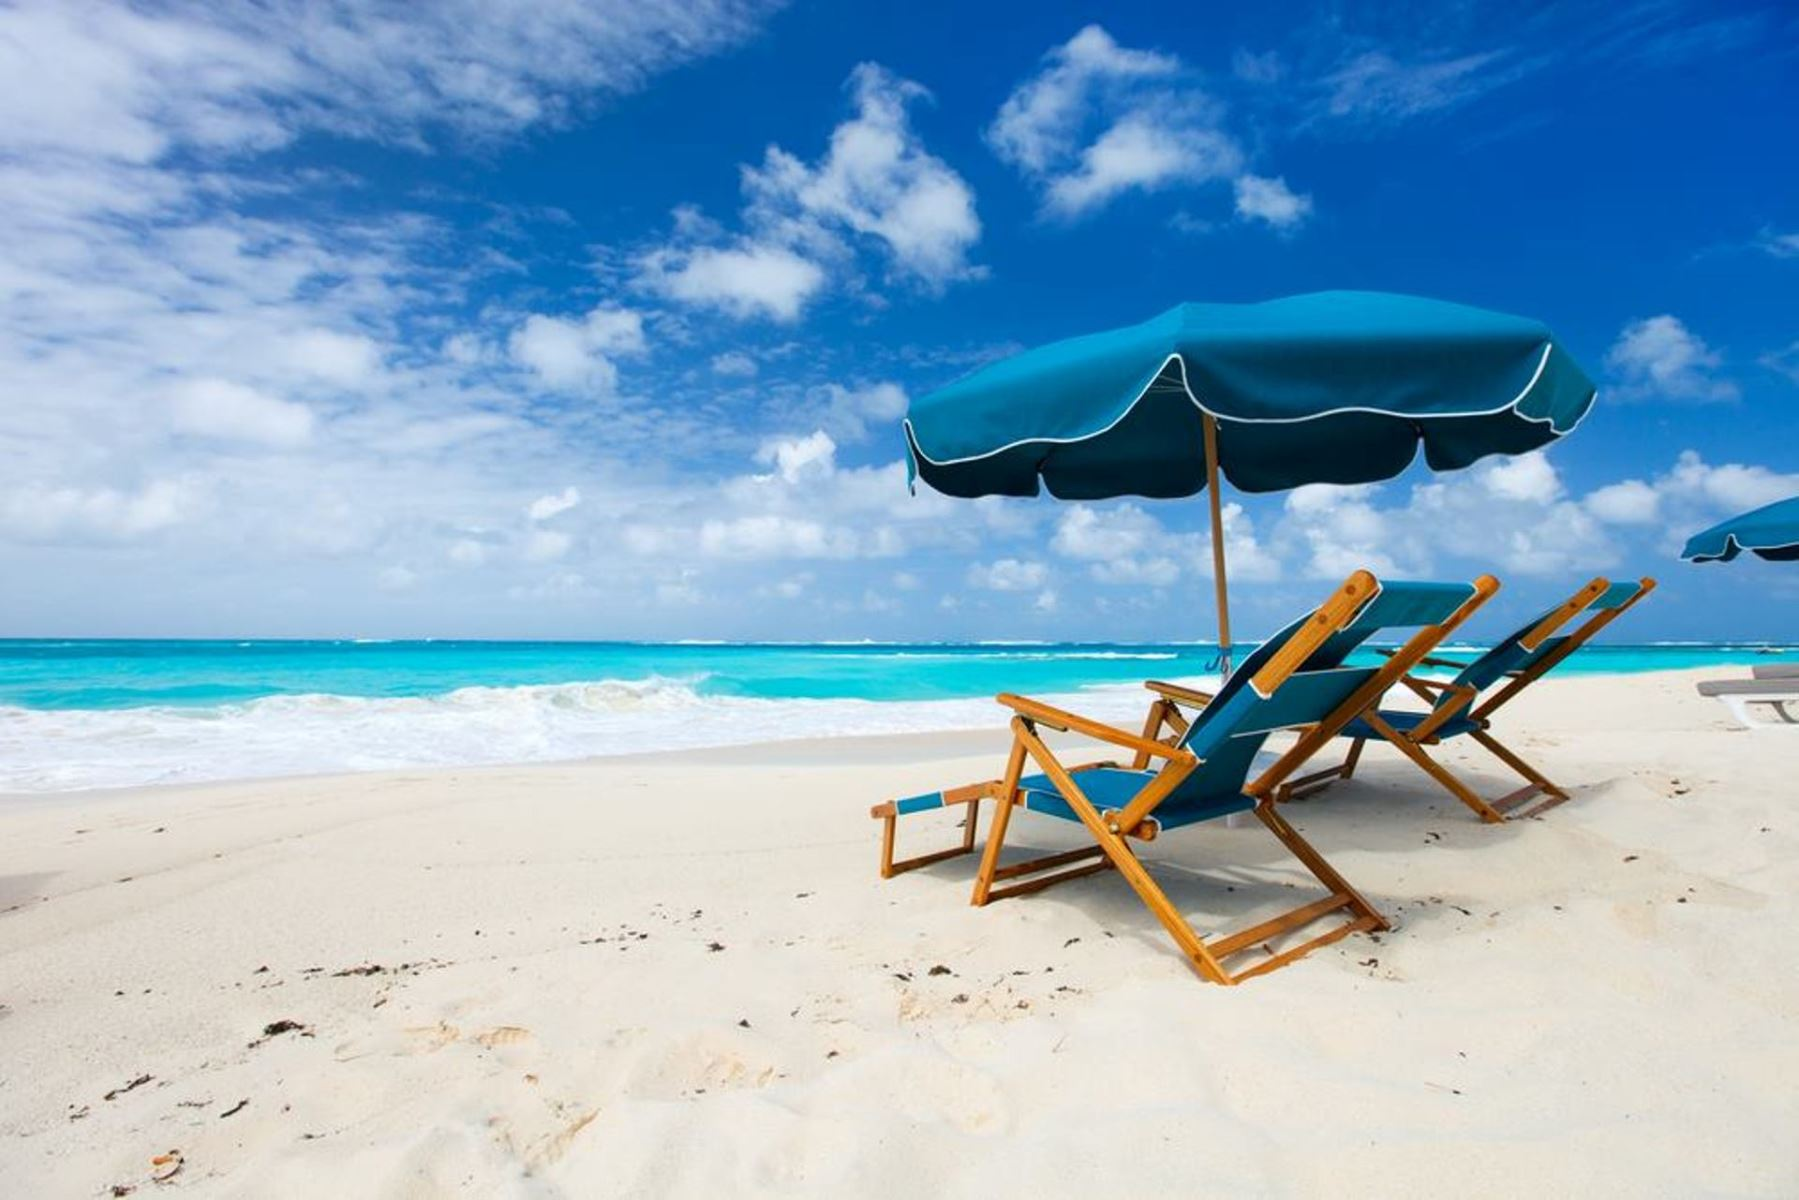 Our guests at Maravilla are treated with free beach setups March-October. Saves you $40 per day.